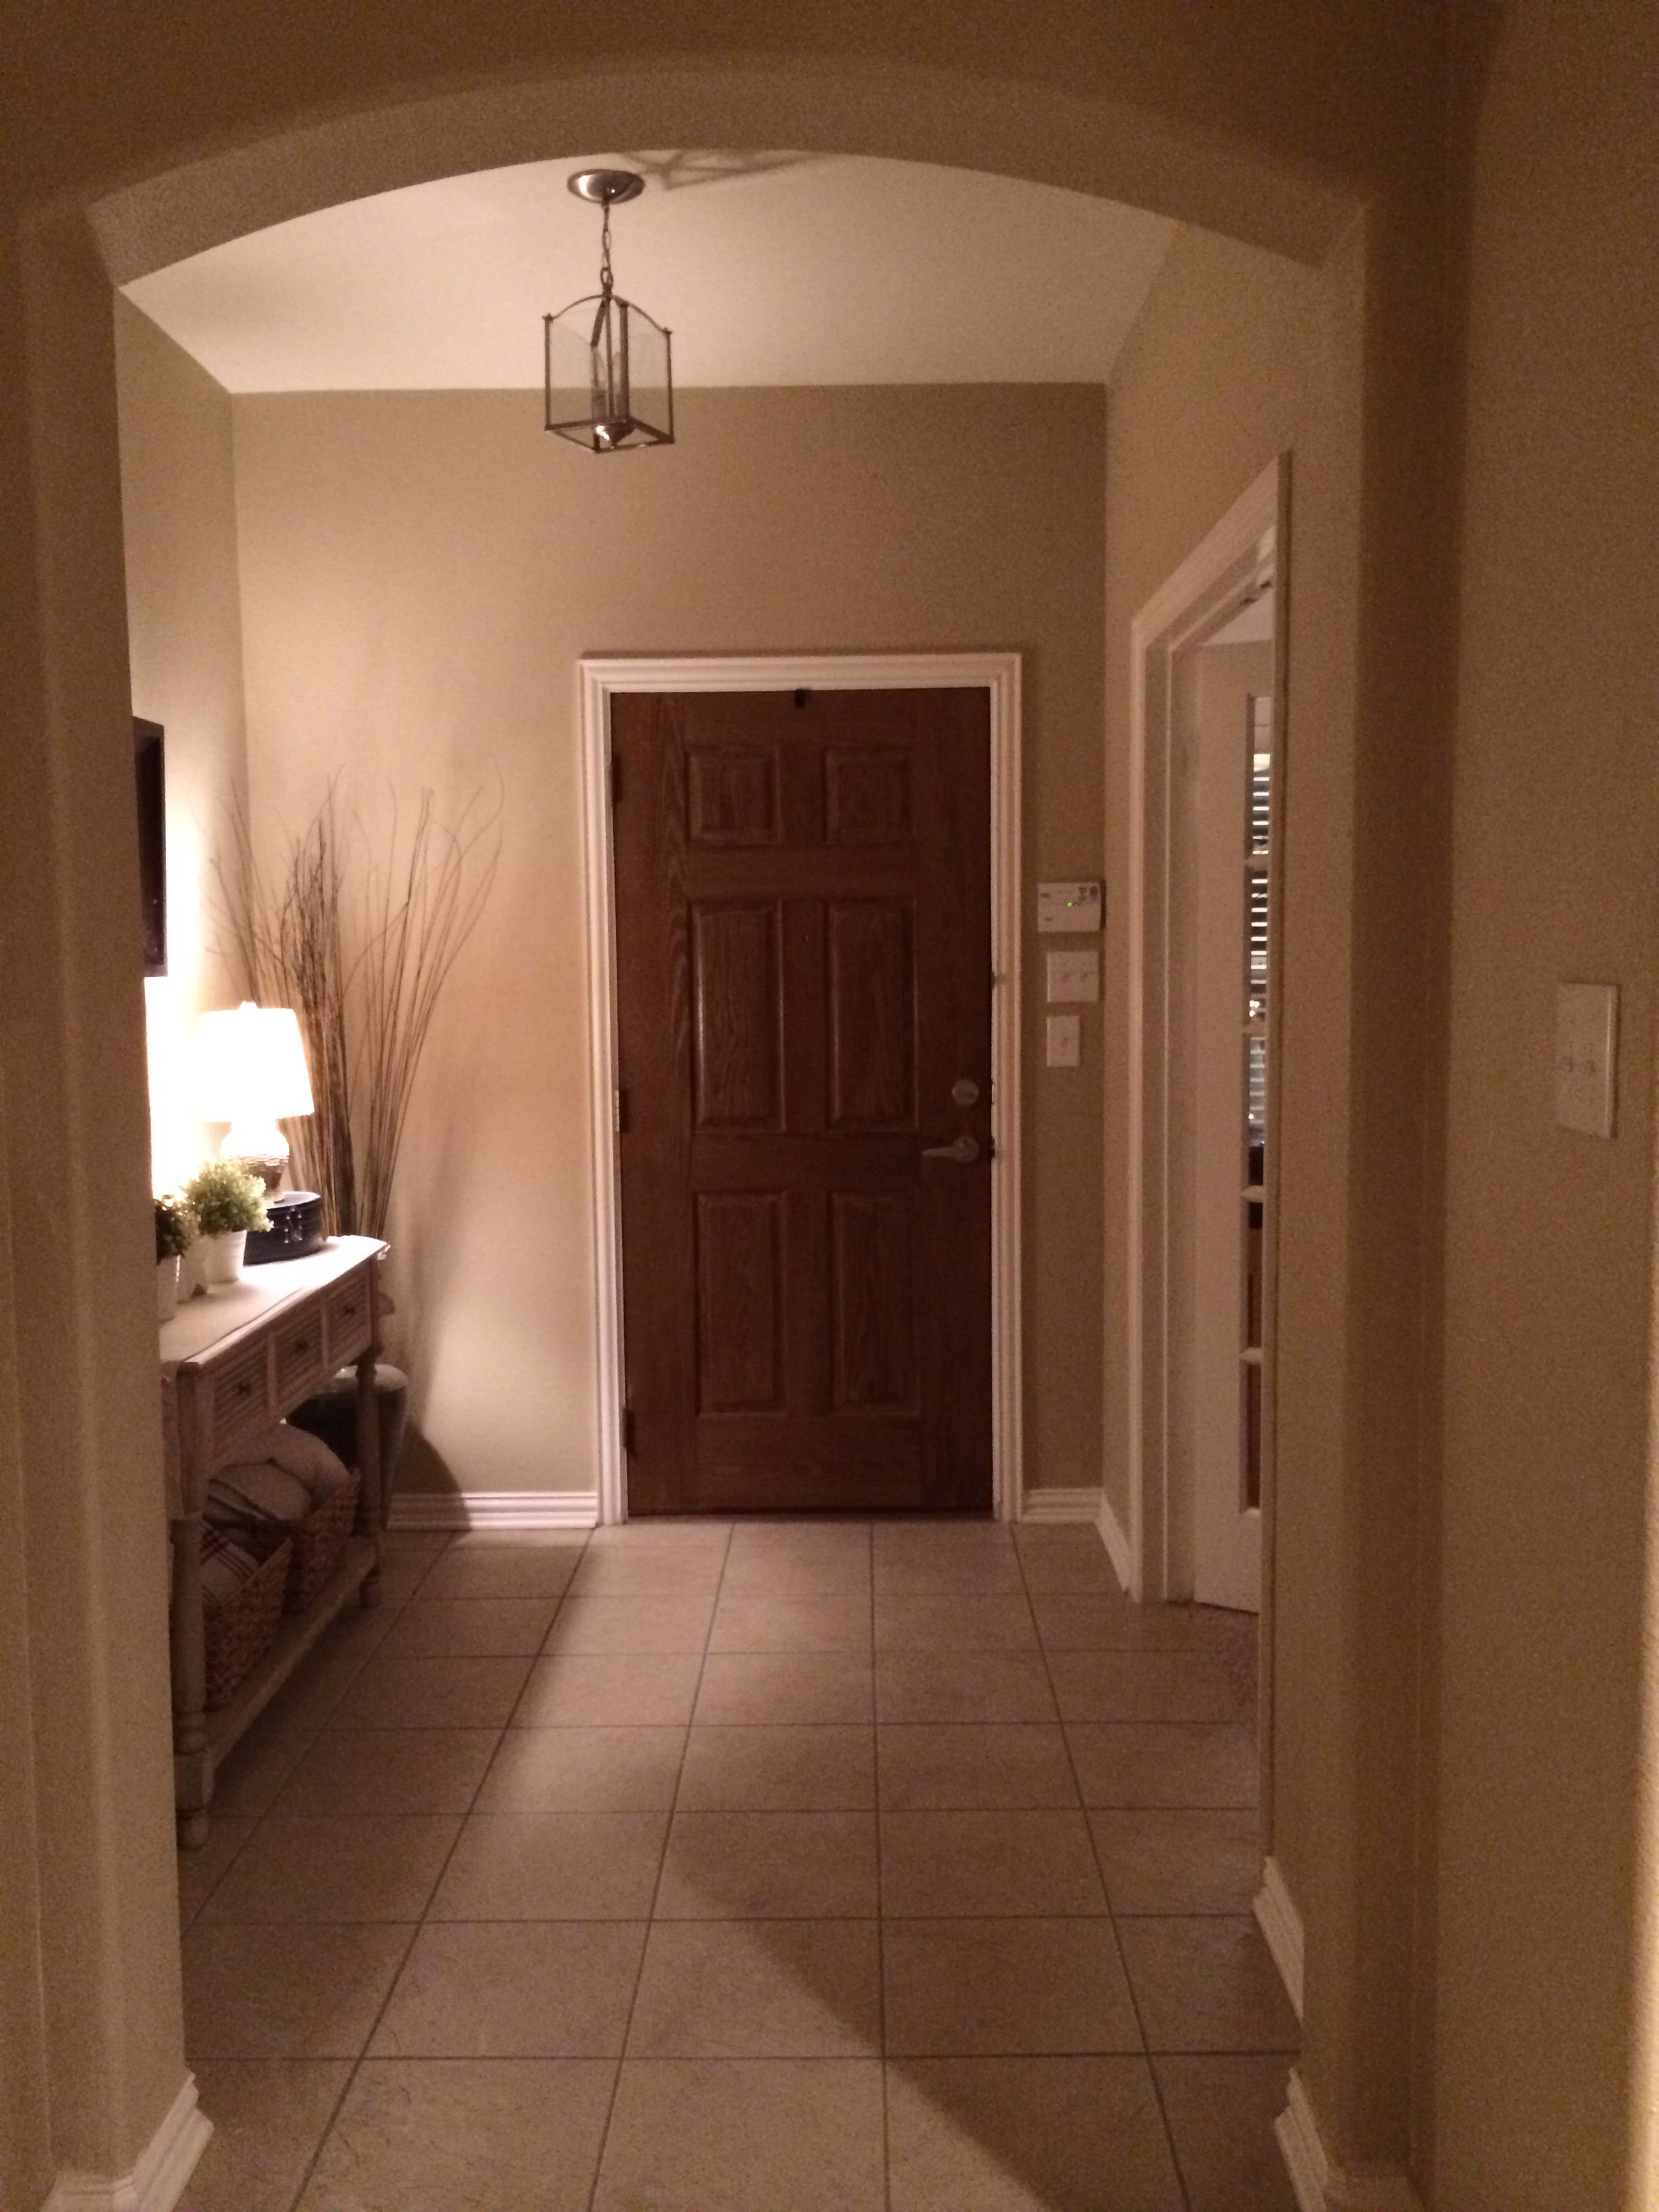 Warm Wall Paint Color Gobi Desert By Behr I Love This